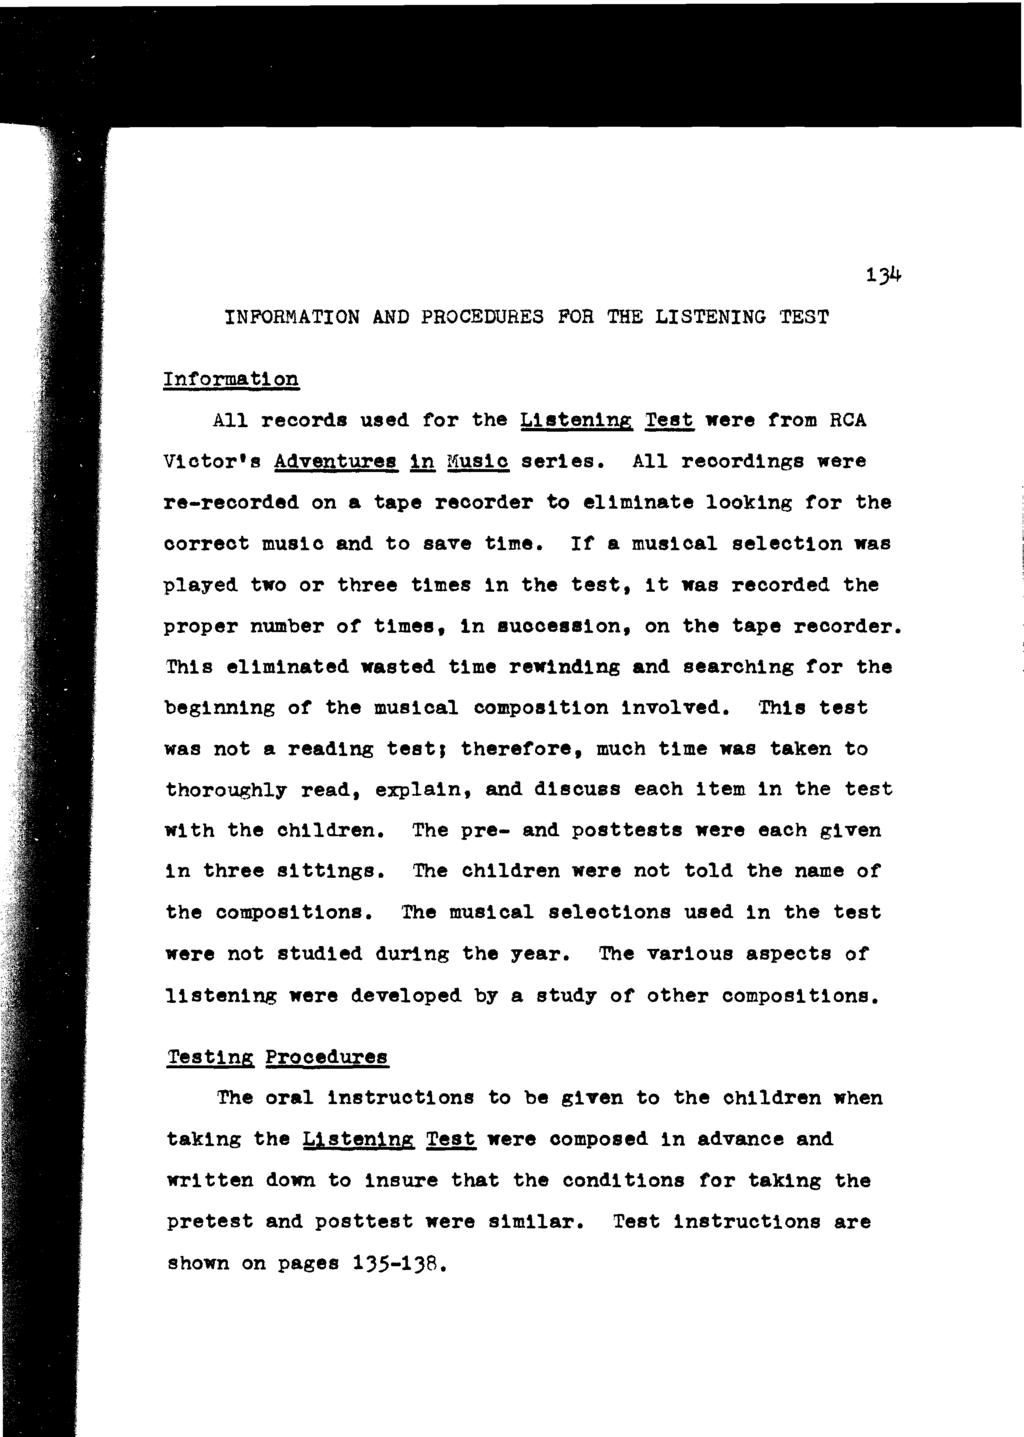 INFORMATION AND PROCEDURES FOR THE LISTENING TEST 134 Information All records used for the Listening ~ were from RCA Viotor's Adventures!n Music series.